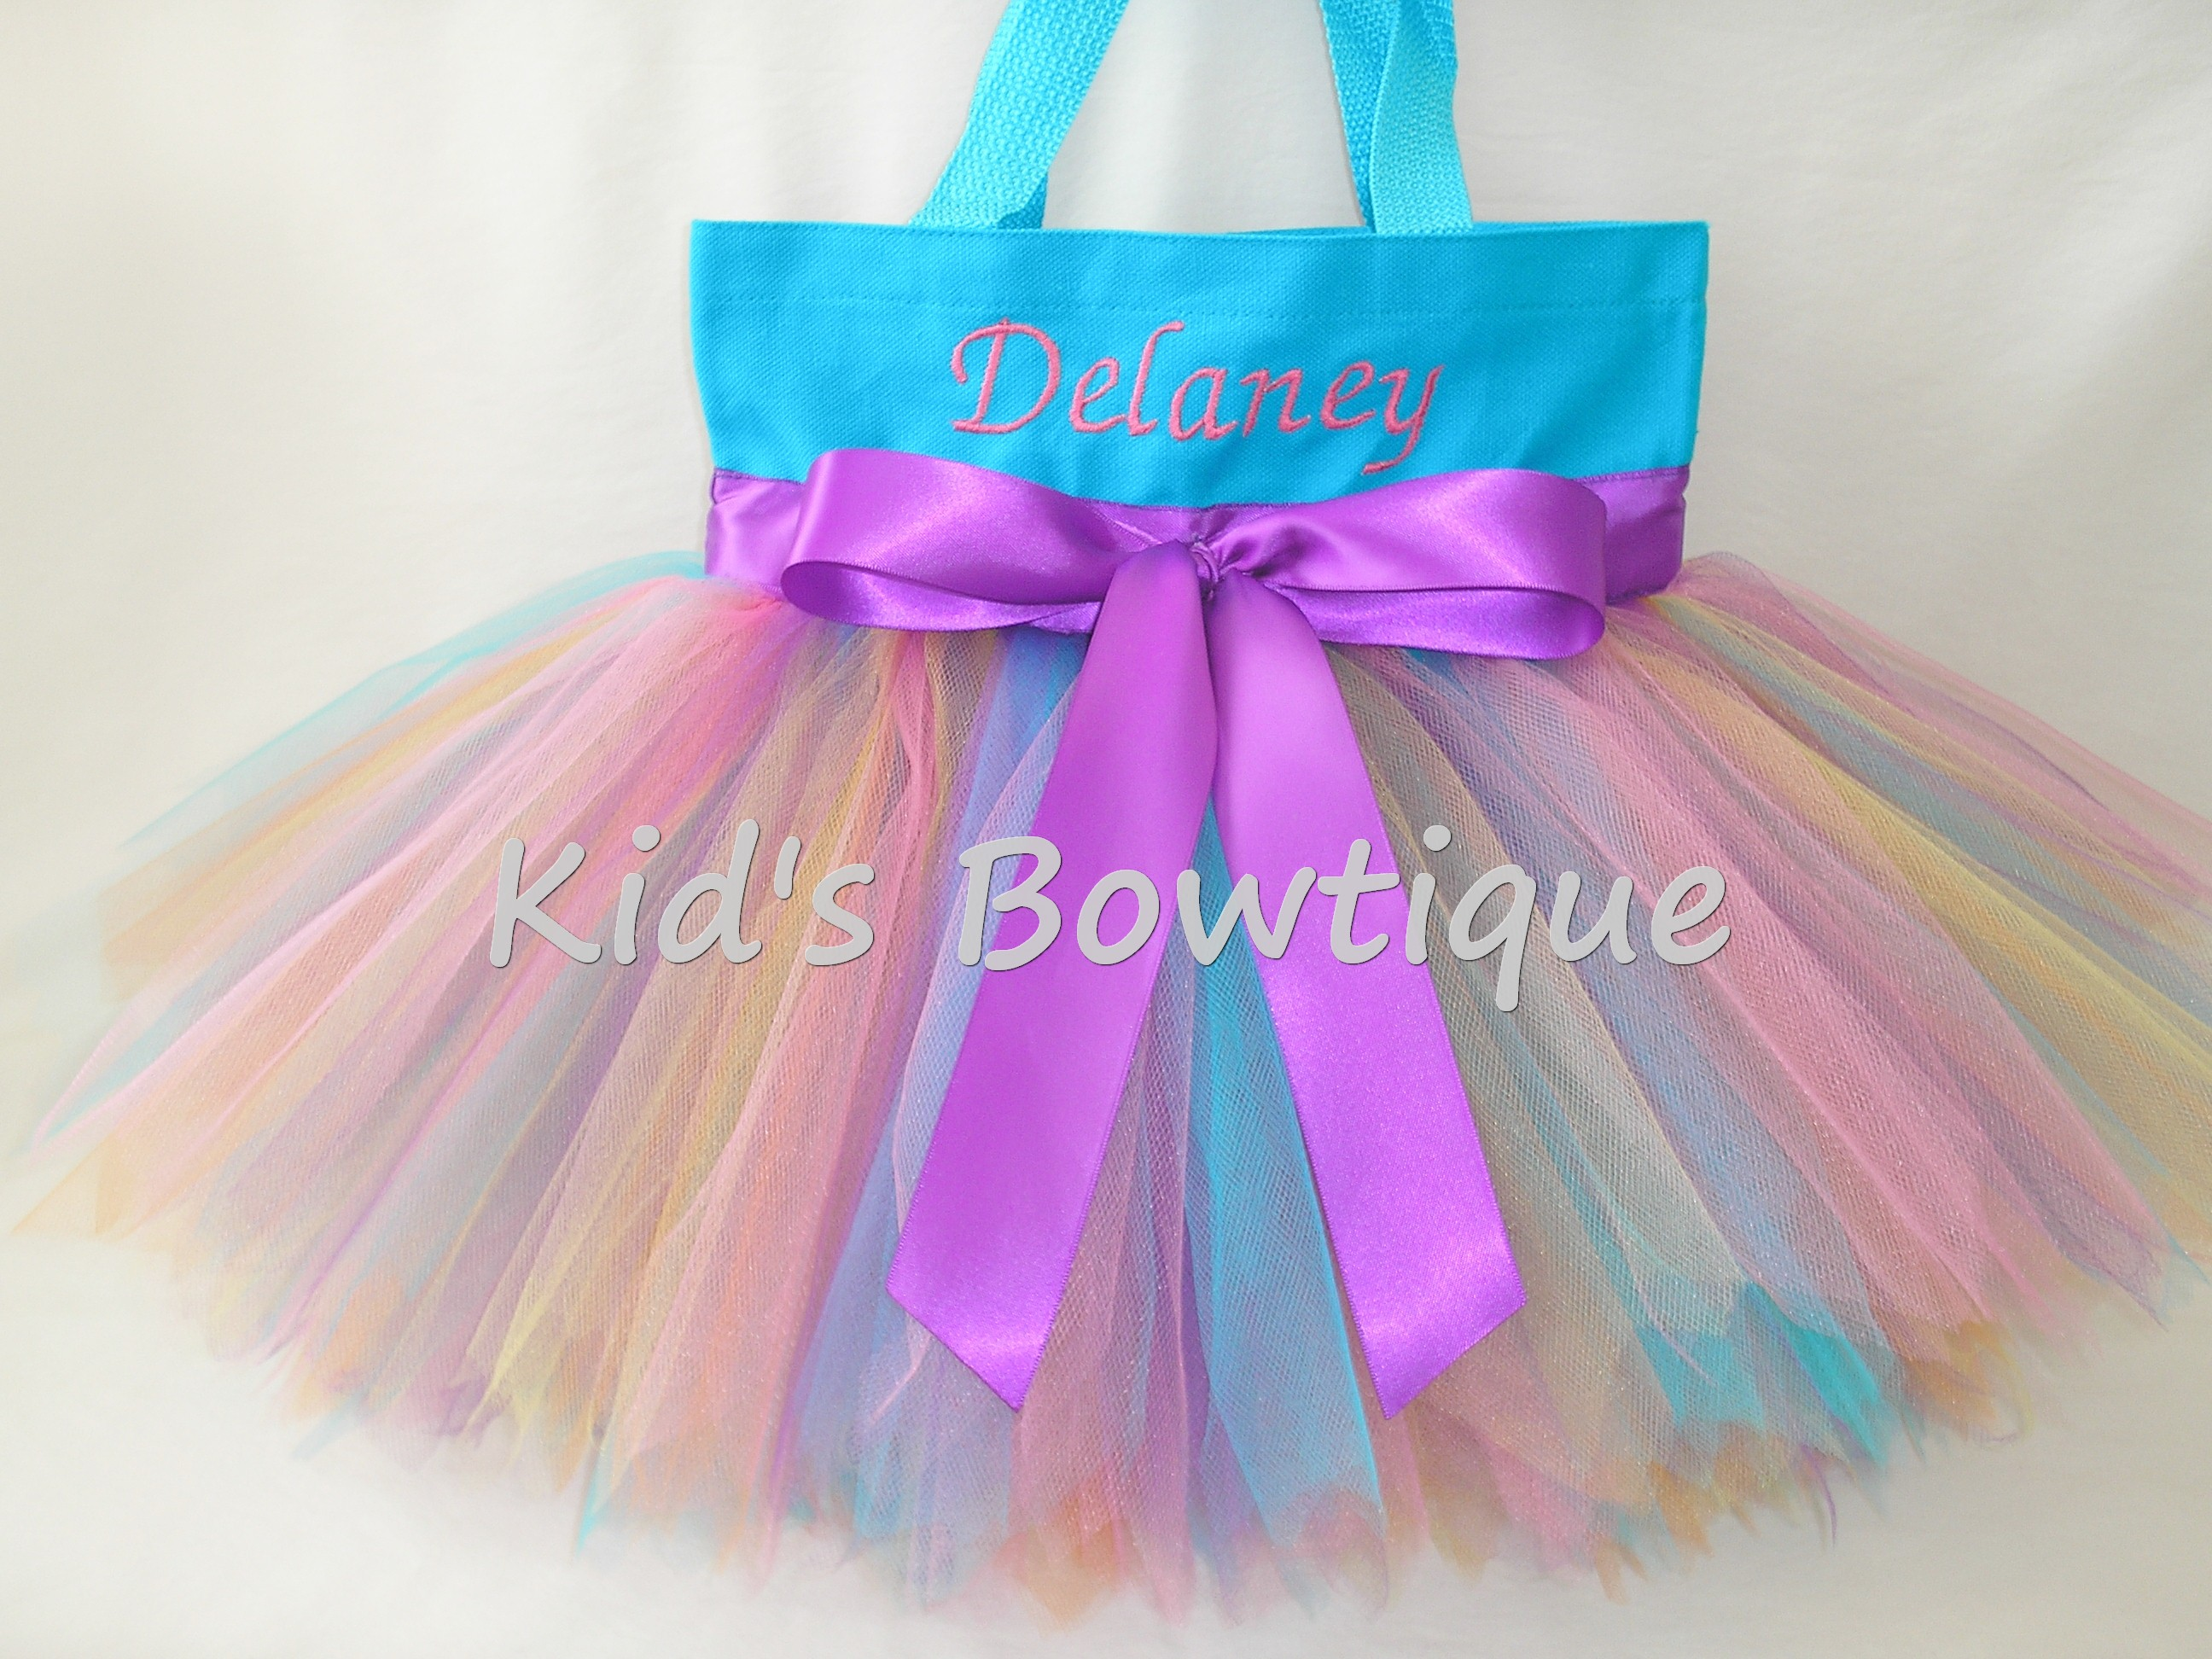 Monogrammed Tutu Tote Bag - ttb41 Aqua Rainbow Fairy -Purple Bow